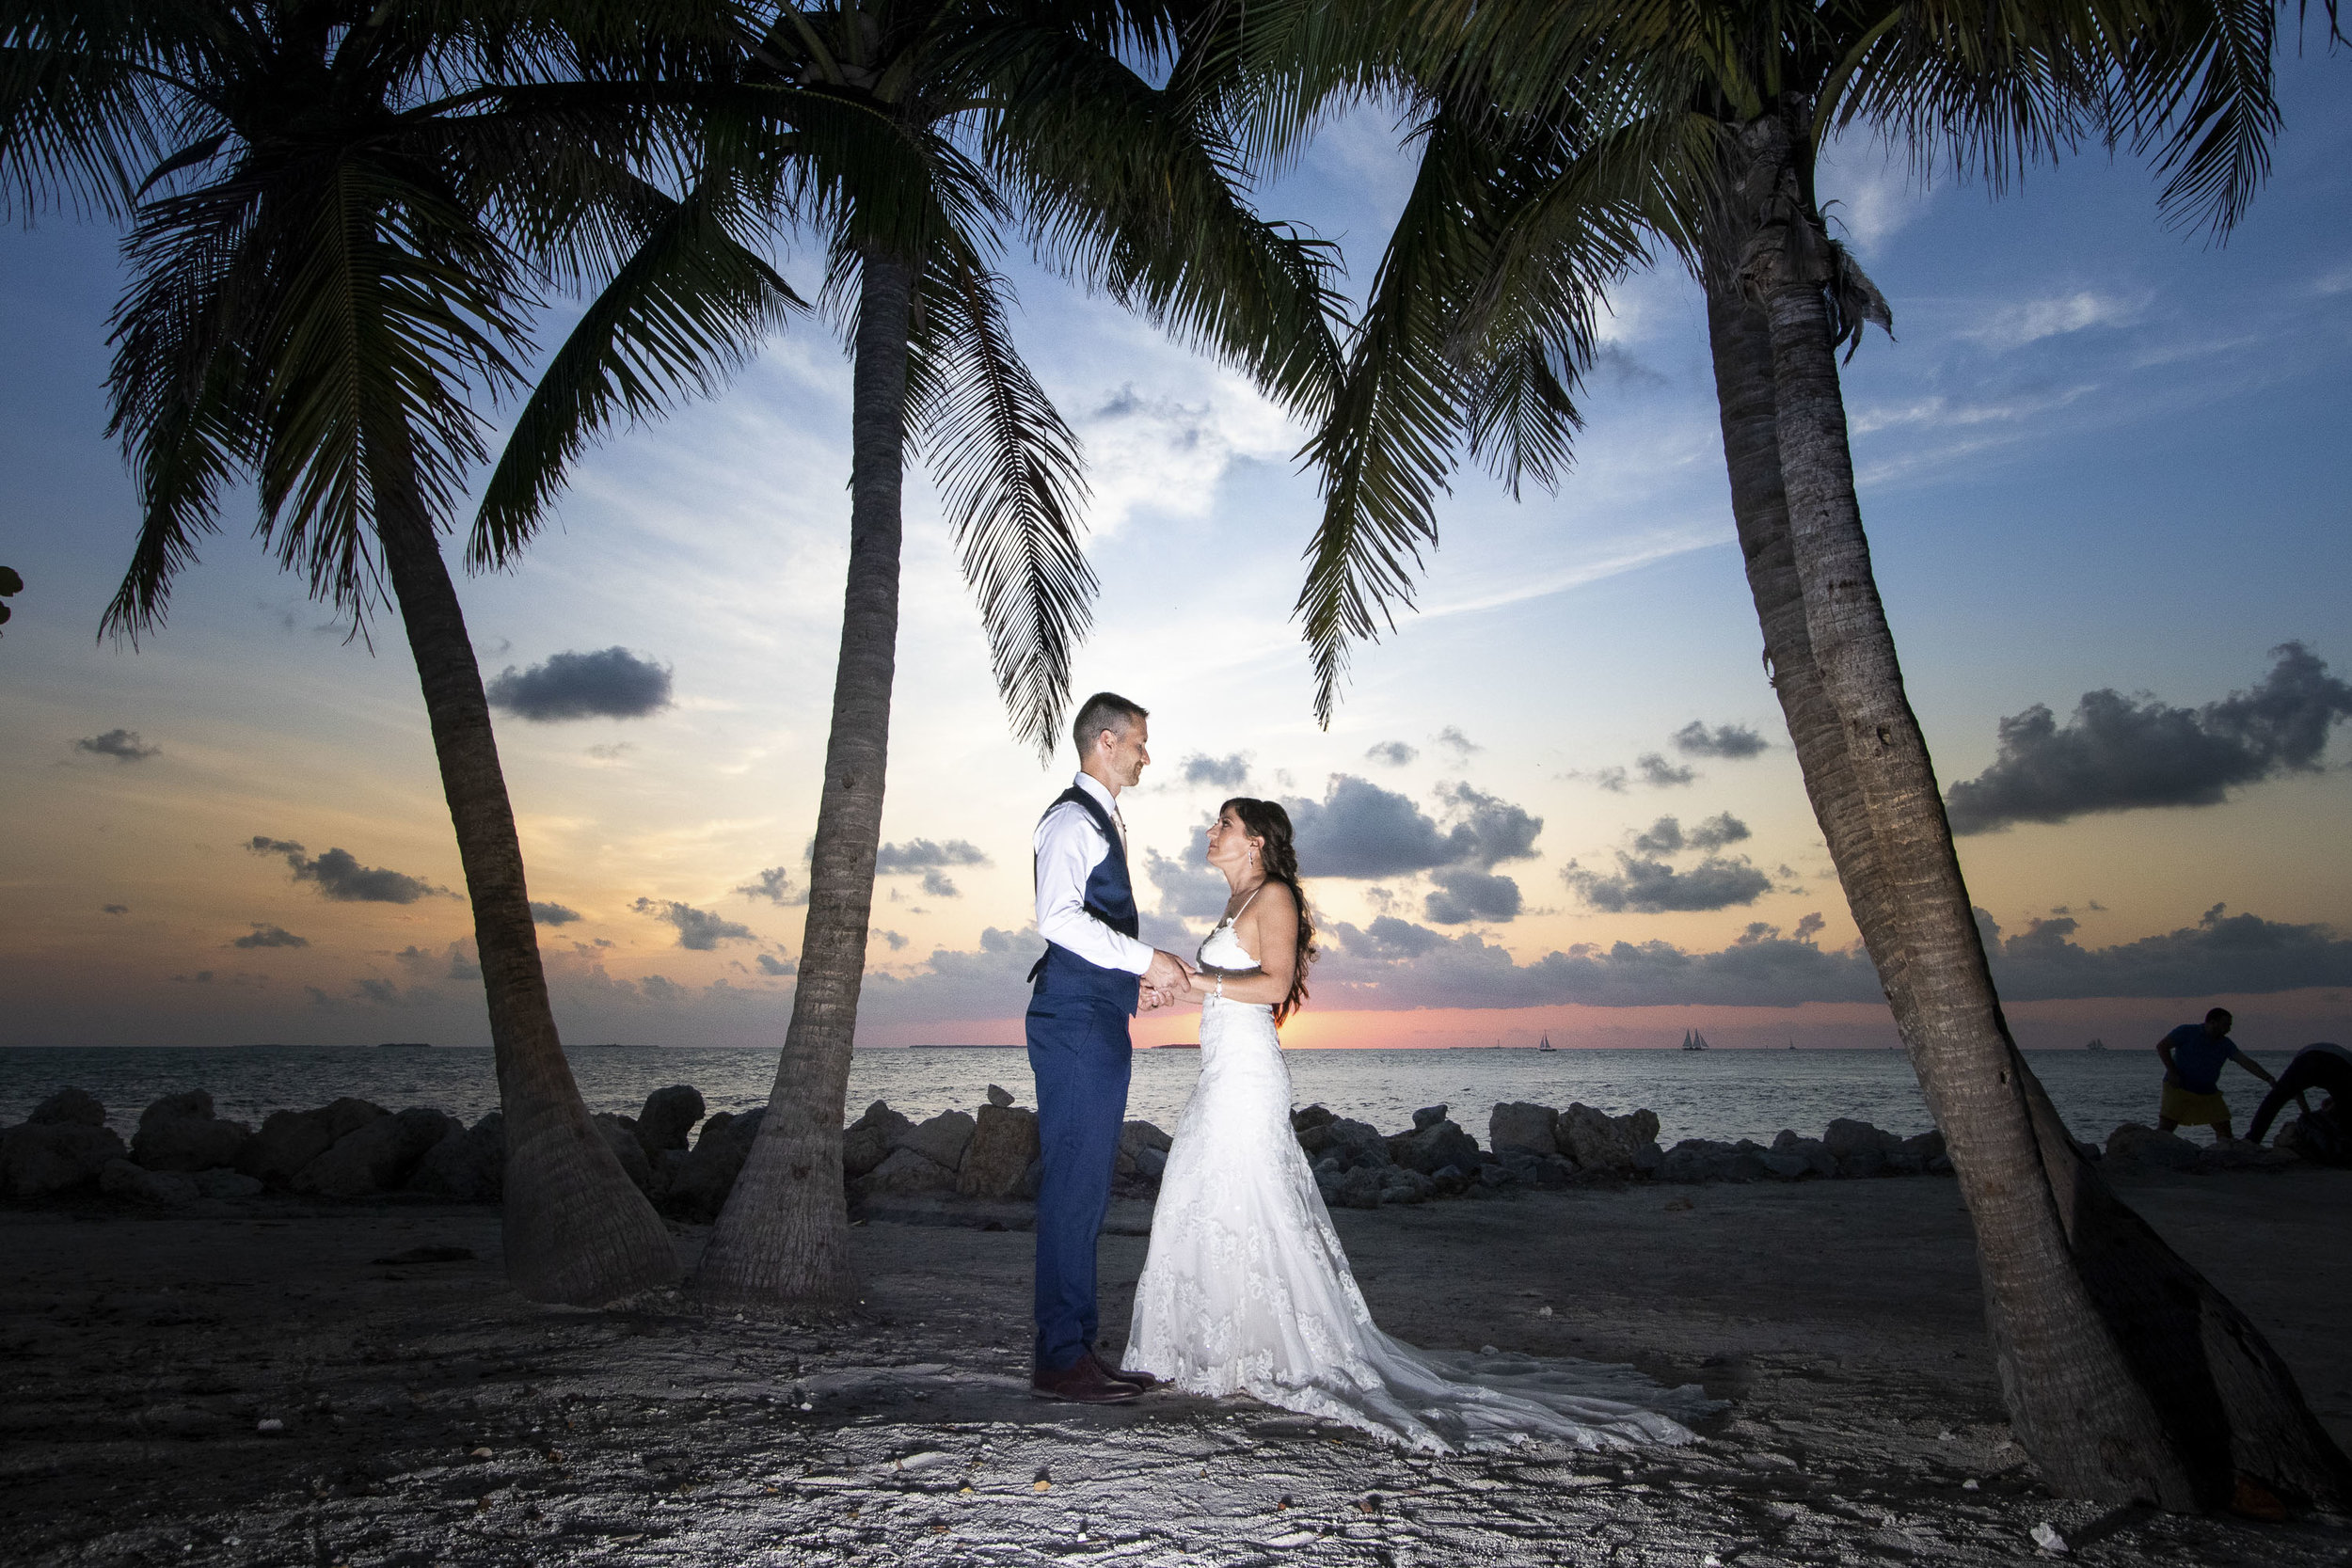 Sunset wedding photo at Fort Zachary Taylor State Park